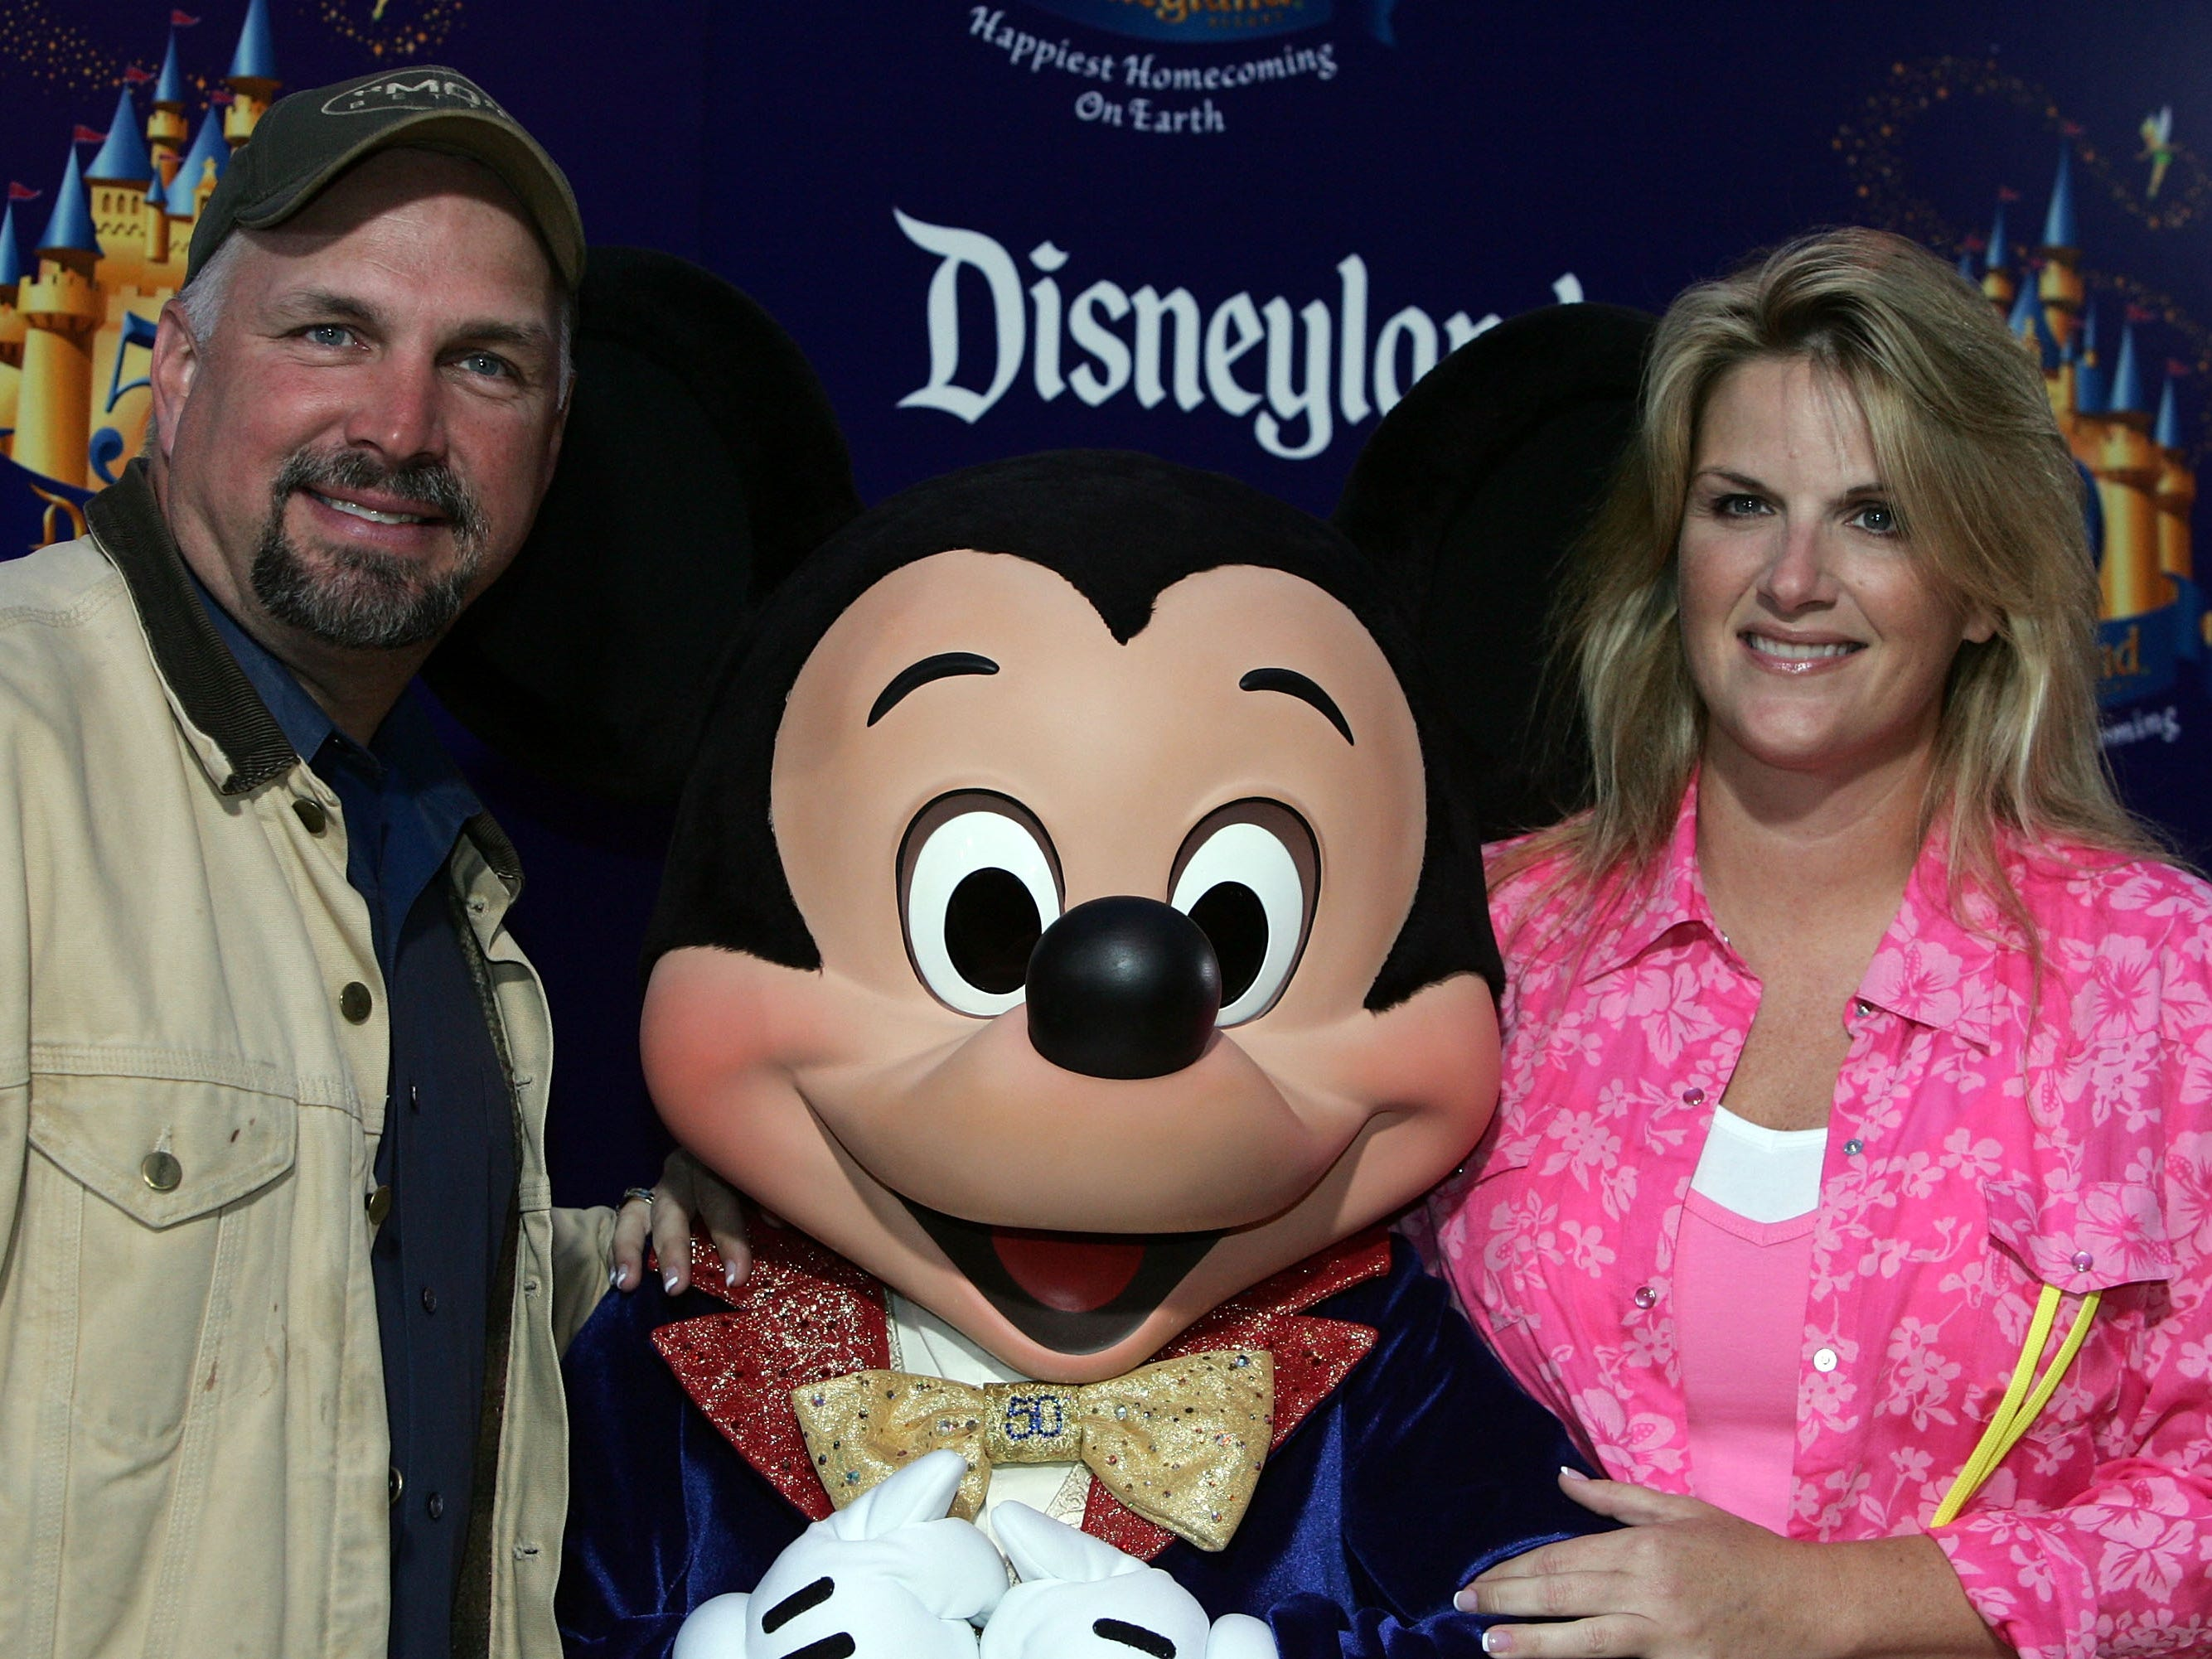 """Garth Brooks, Mickey Mouse and singer Trisha Yearwood are seen attending the """"Gold Carpet"""" arrivals on Main Street U.S.A. during the Disneyland 50th Anniversary Celebration at Disneyland Park on May 4, 2005 in Anaheim, California."""